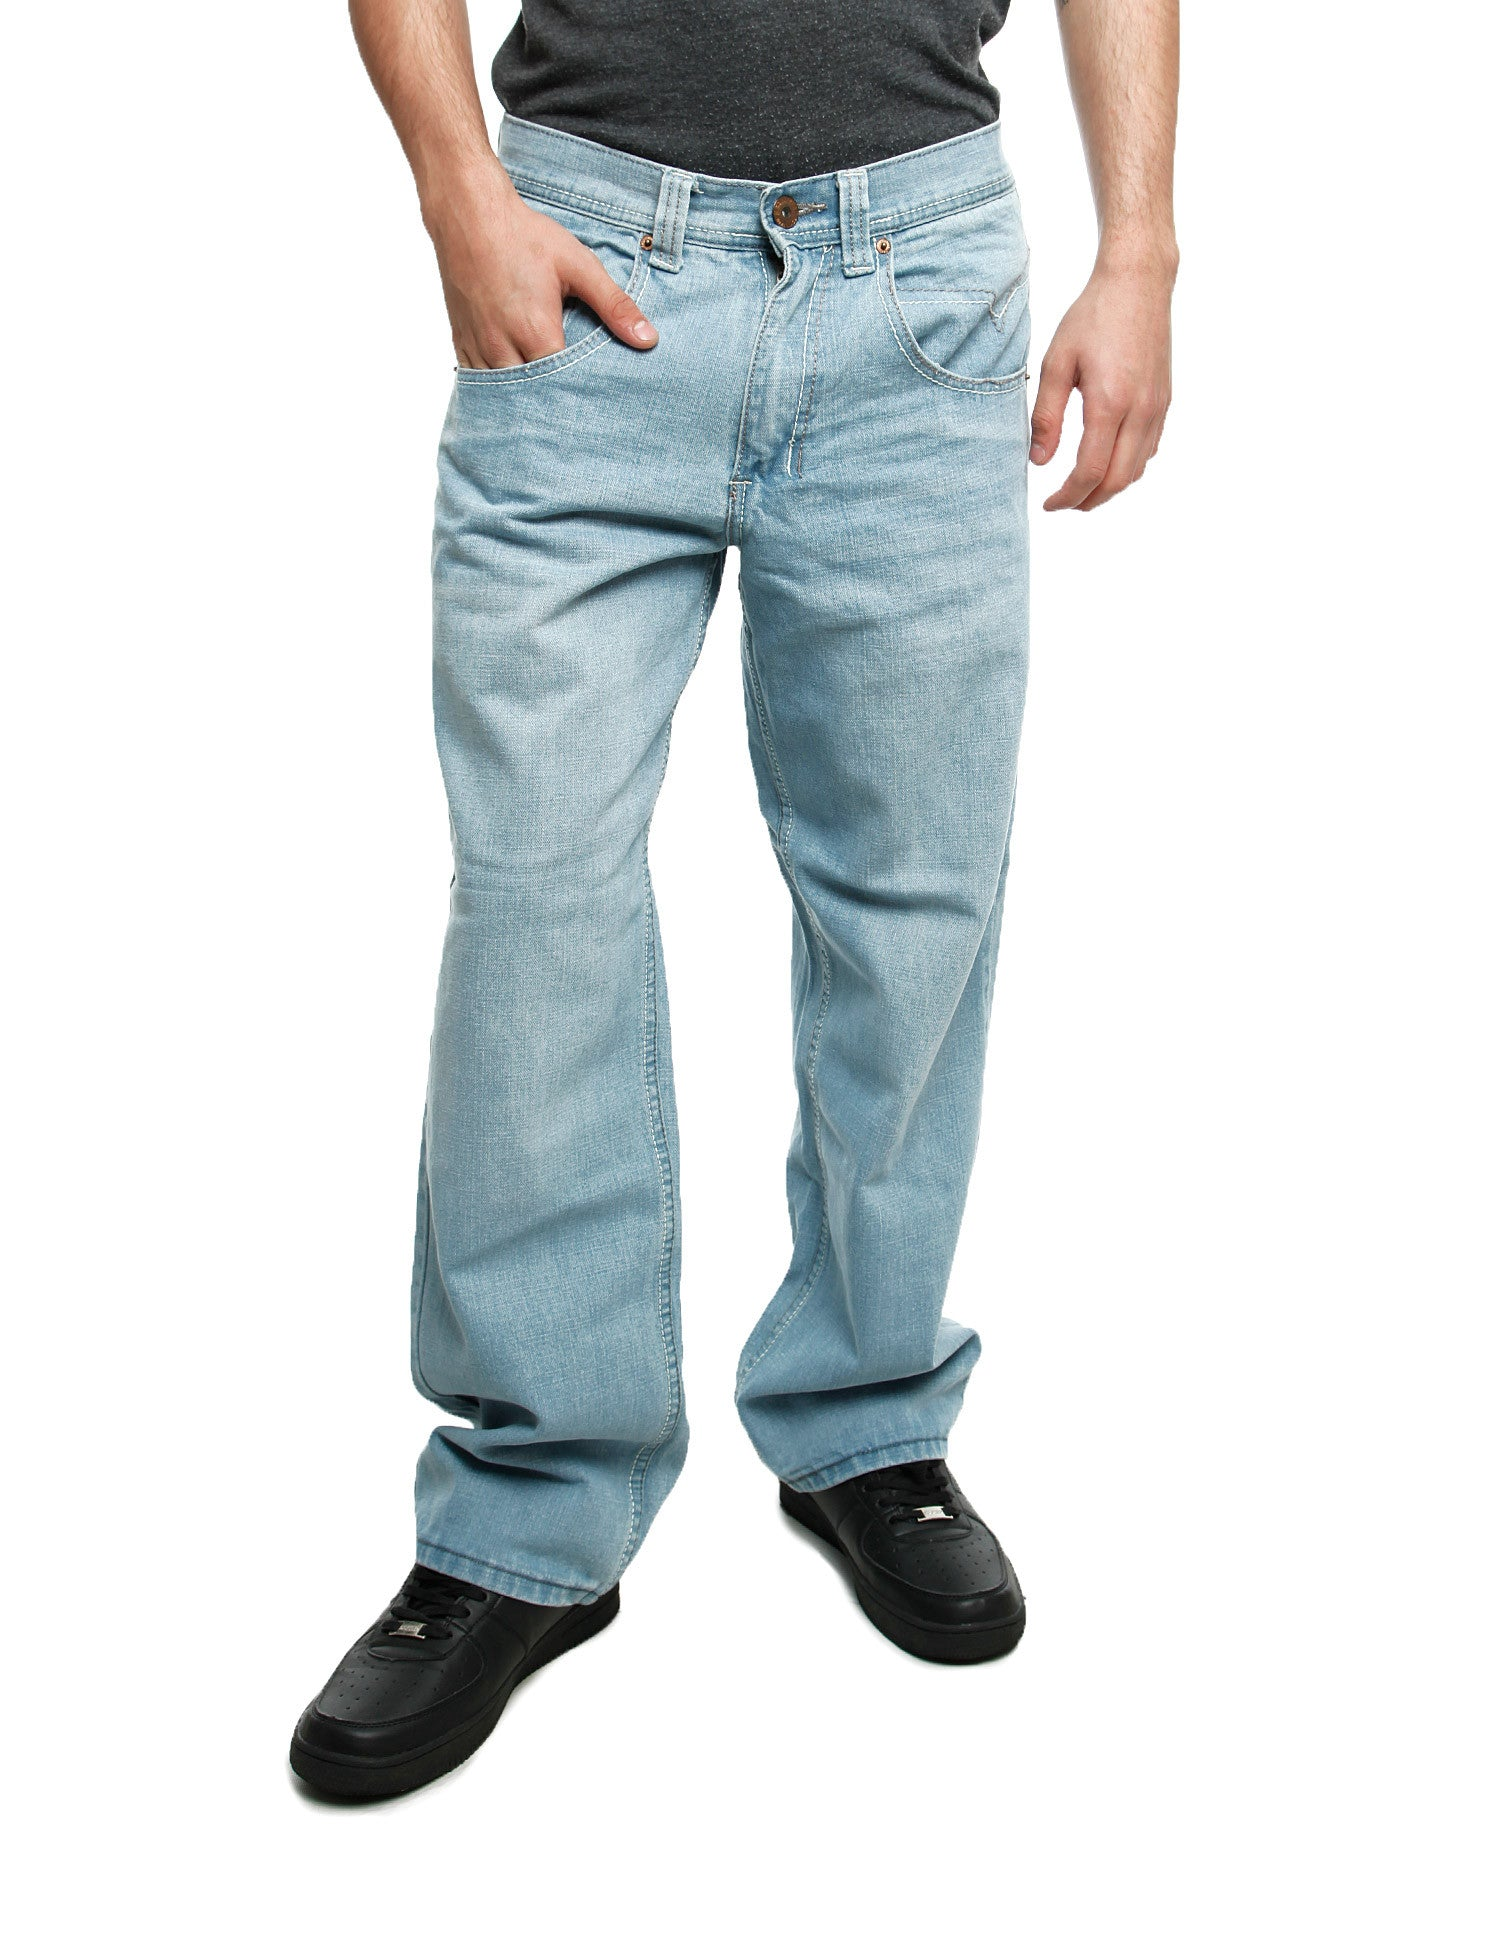 Royal Blue Jeans 8207 Lt. Blue